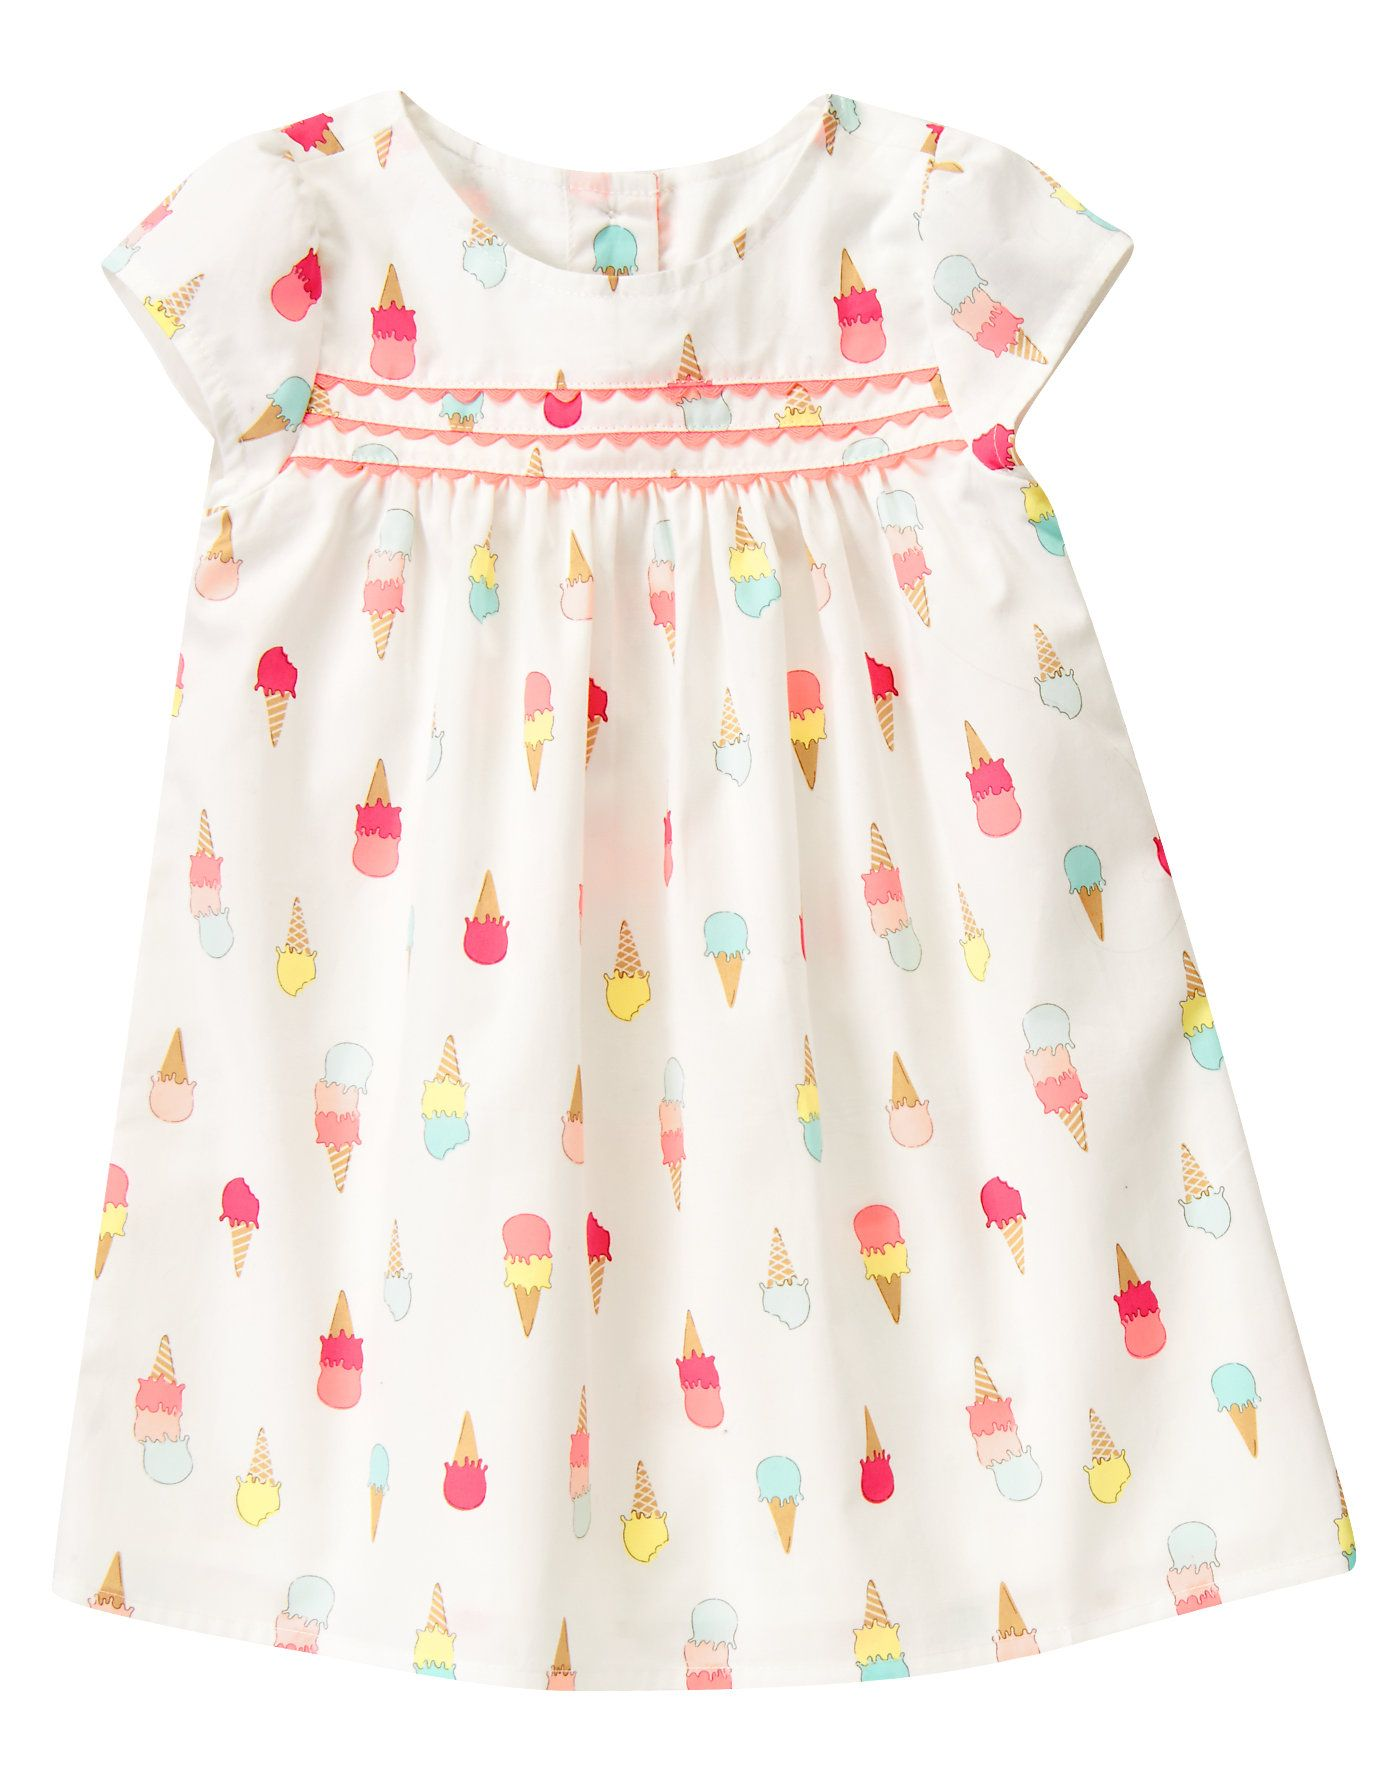 Ice Cream Dress at Gymboree  Collection Name: Ice Cream Parlor (2015)